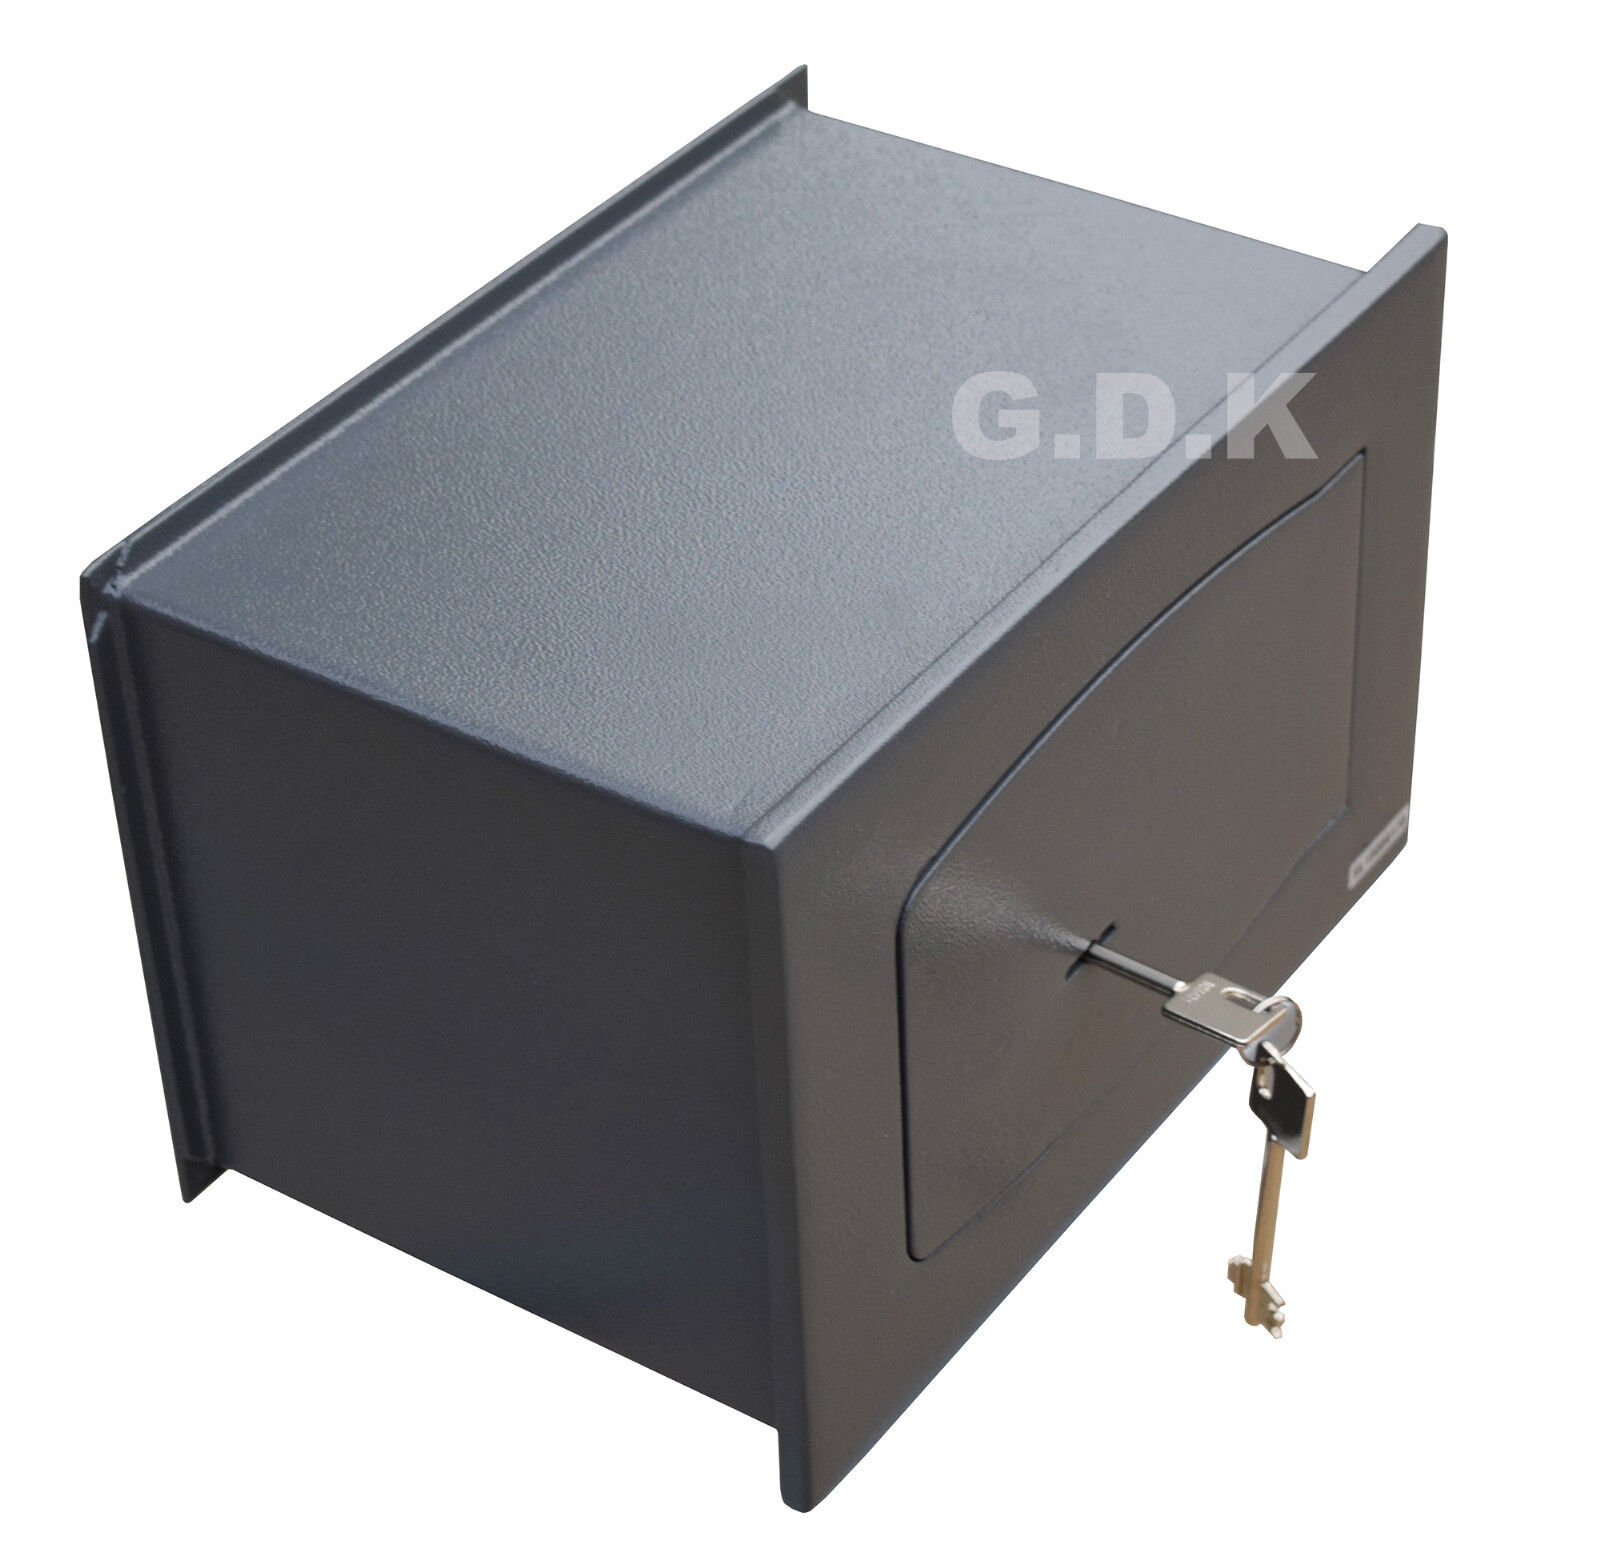 Gdk Built In Wall Floor Safe High Security Home